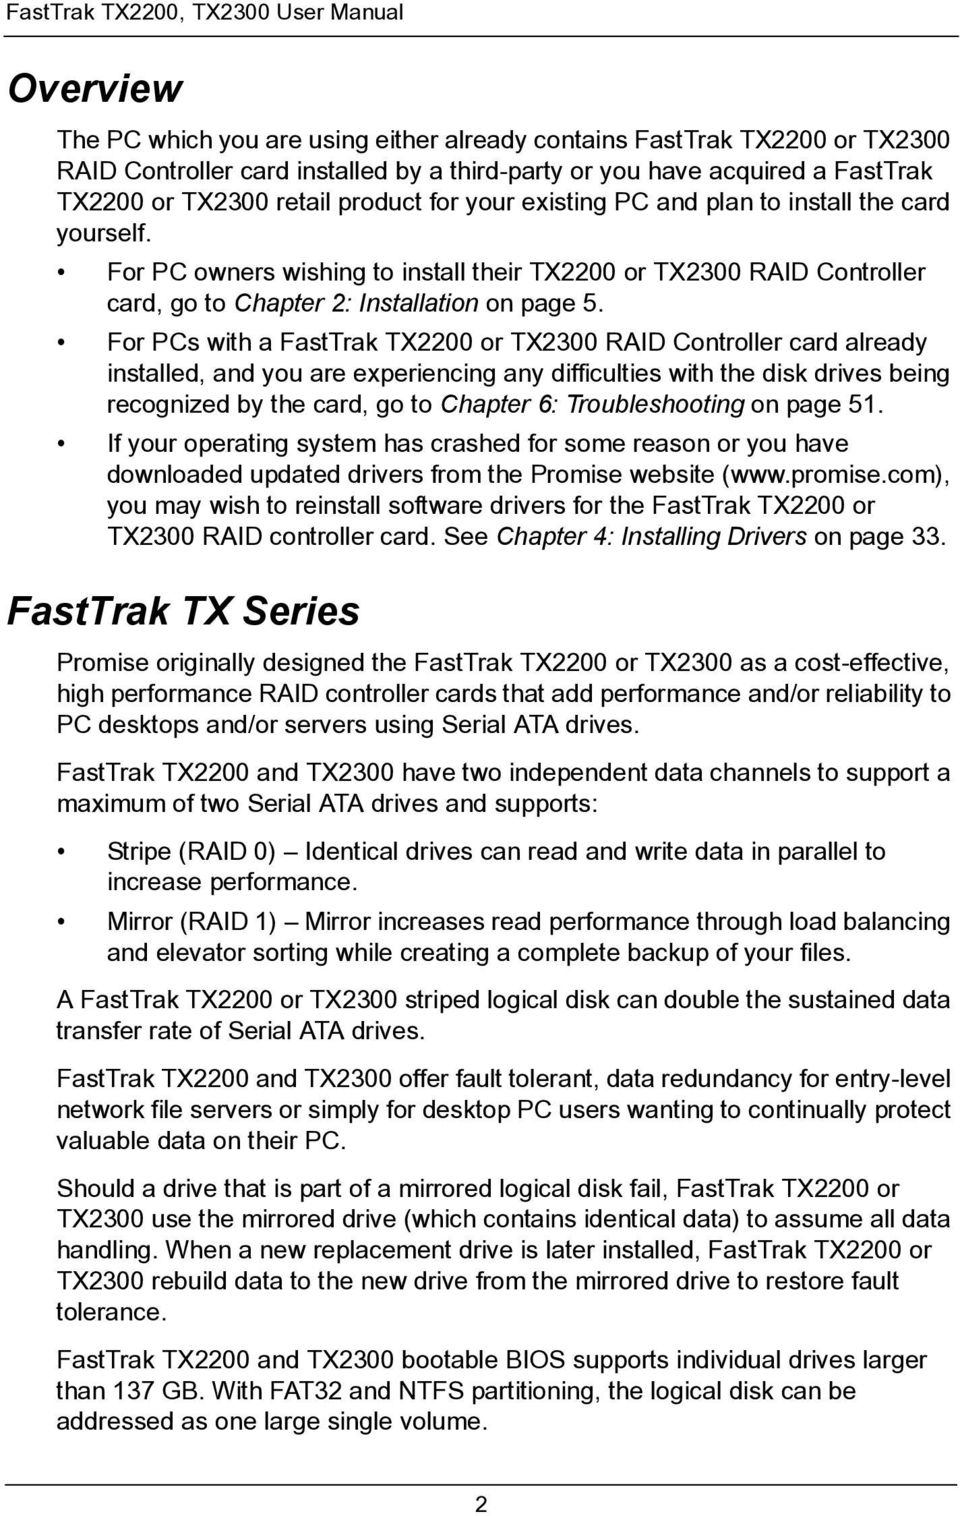 For PC owners wishing to install their TX2200 or TX2300 RAID Controller card, go to Chapter 2: Installation on page 5.